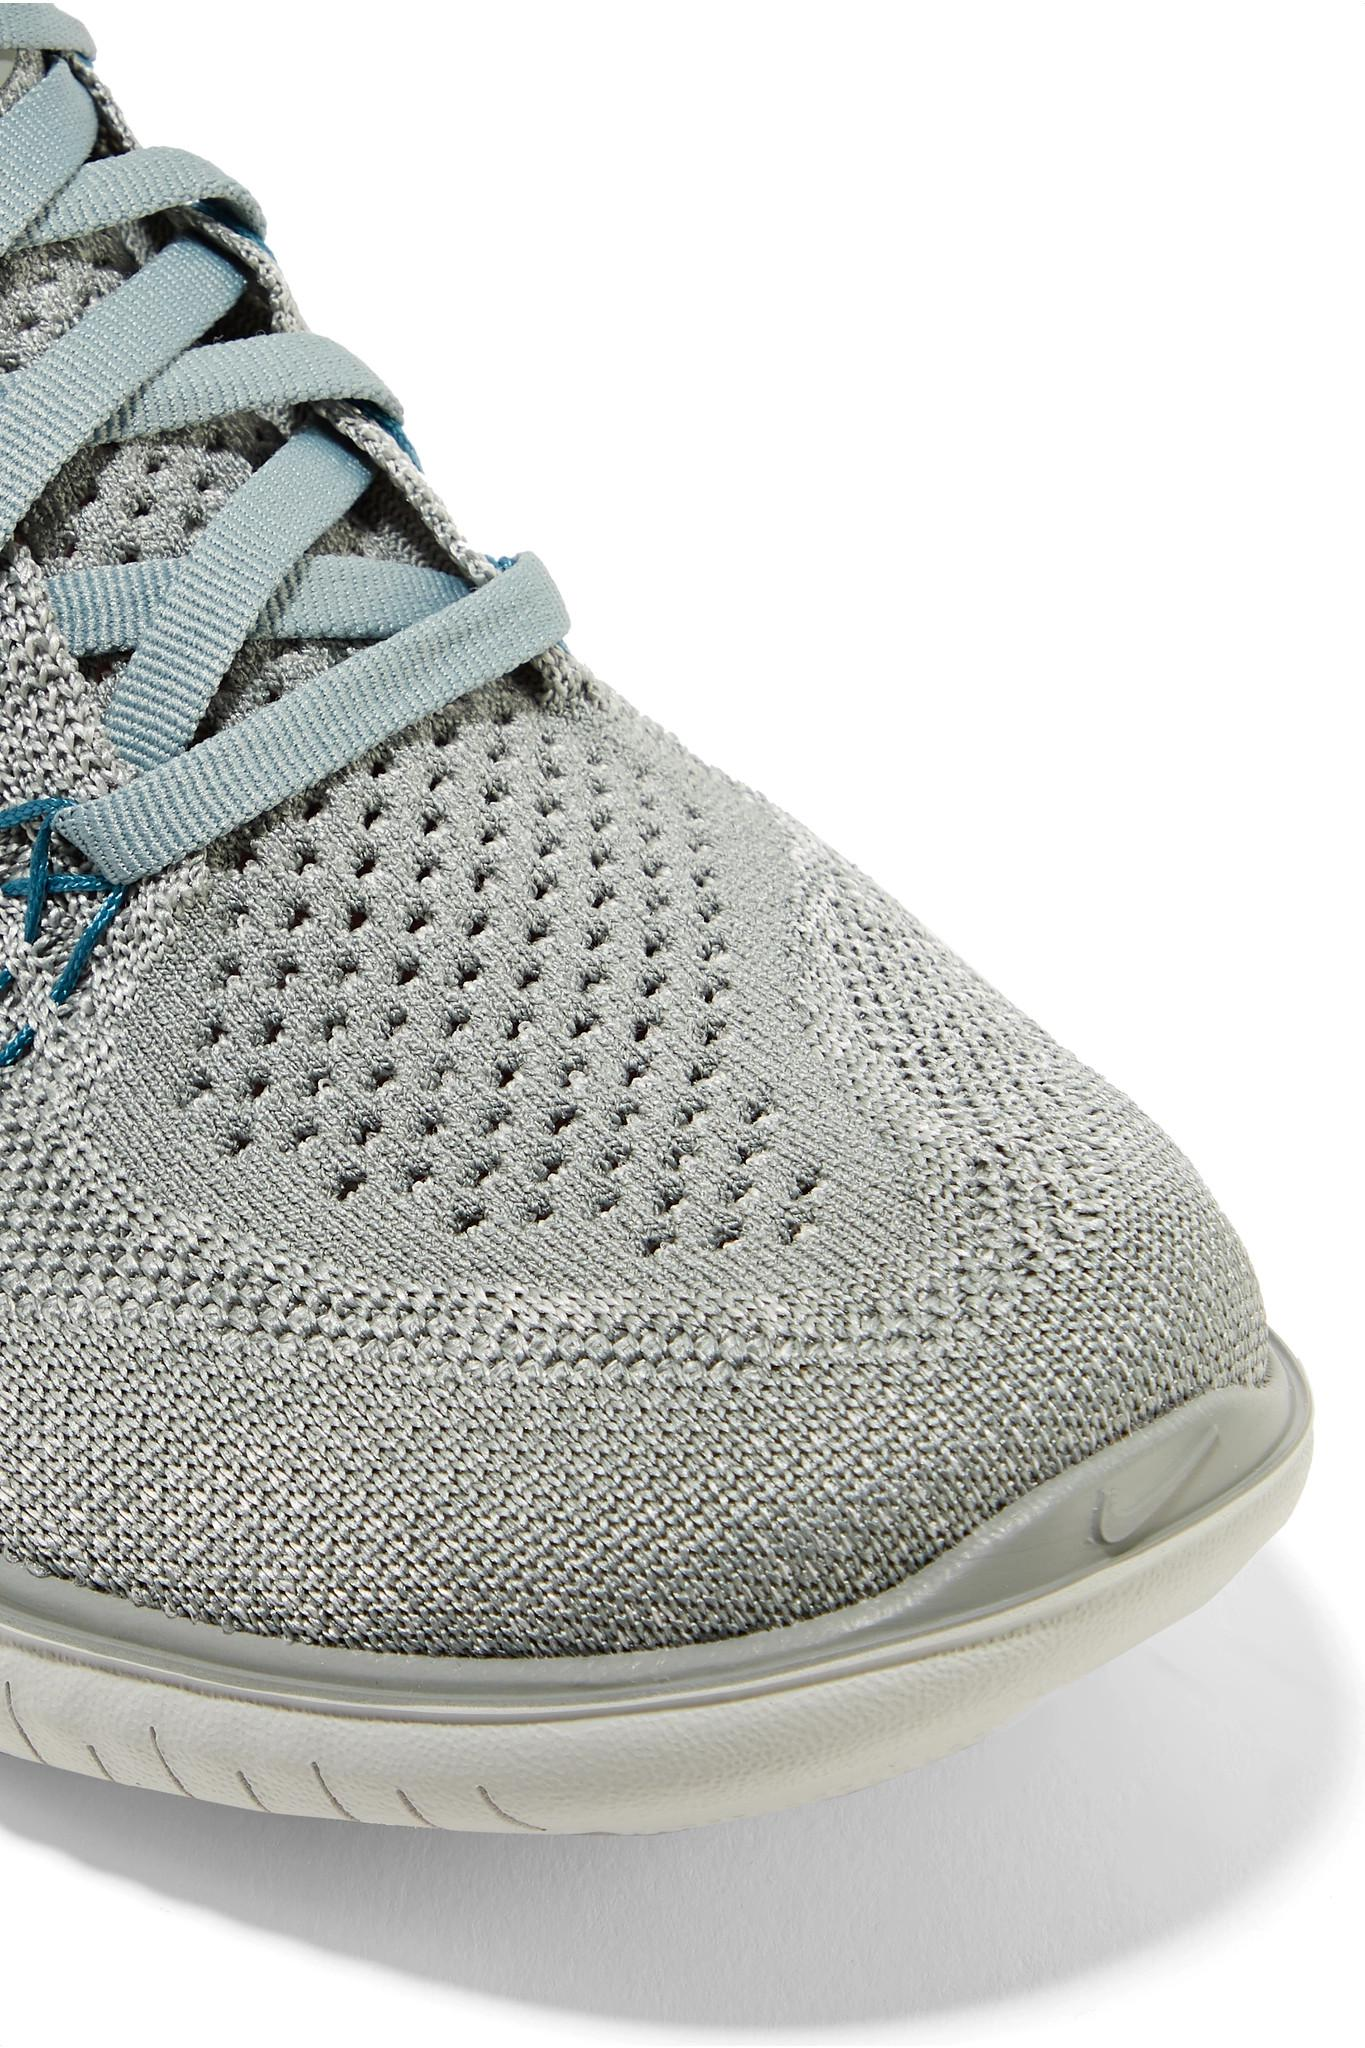 482141ee3ad3a Nike - Gray Free Rn Flyknit Sneakers - Lyst. View fullscreen